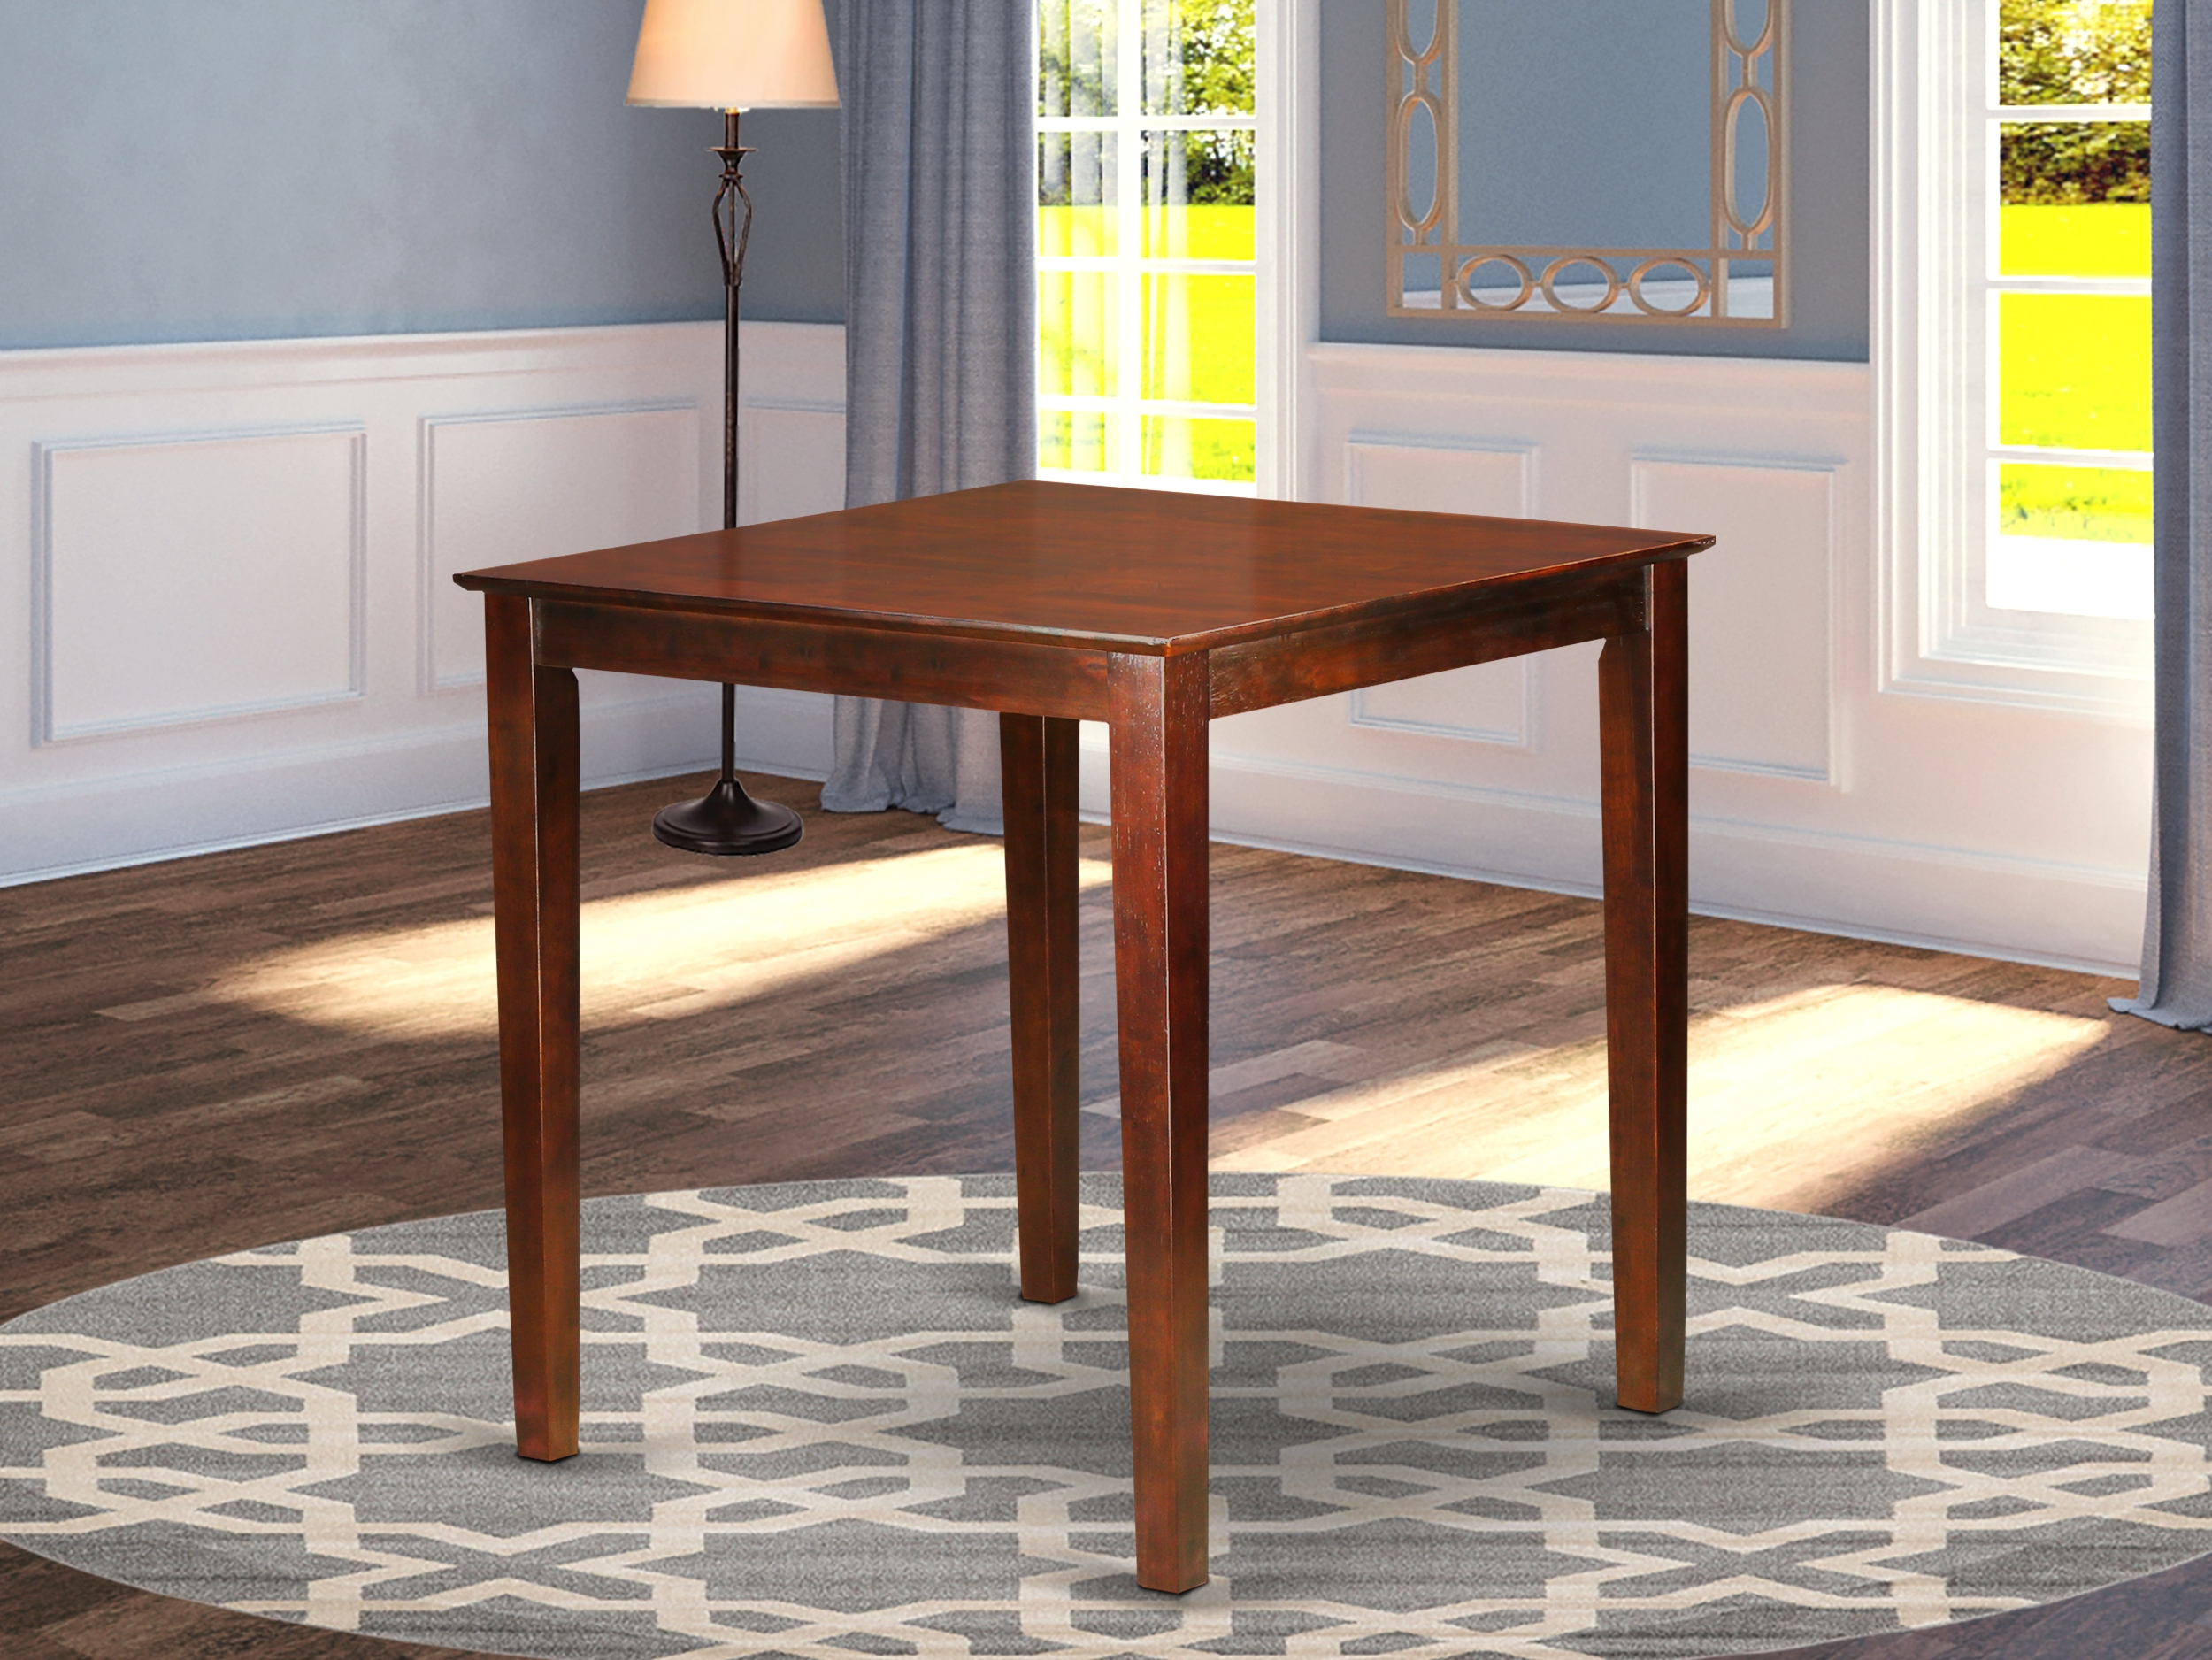 Pbt Brn T 36″ Square Counter Height Pub Set Table In Dark Pertaining To Newest Menifee 36'' Dining Tables (View 4 of 15)